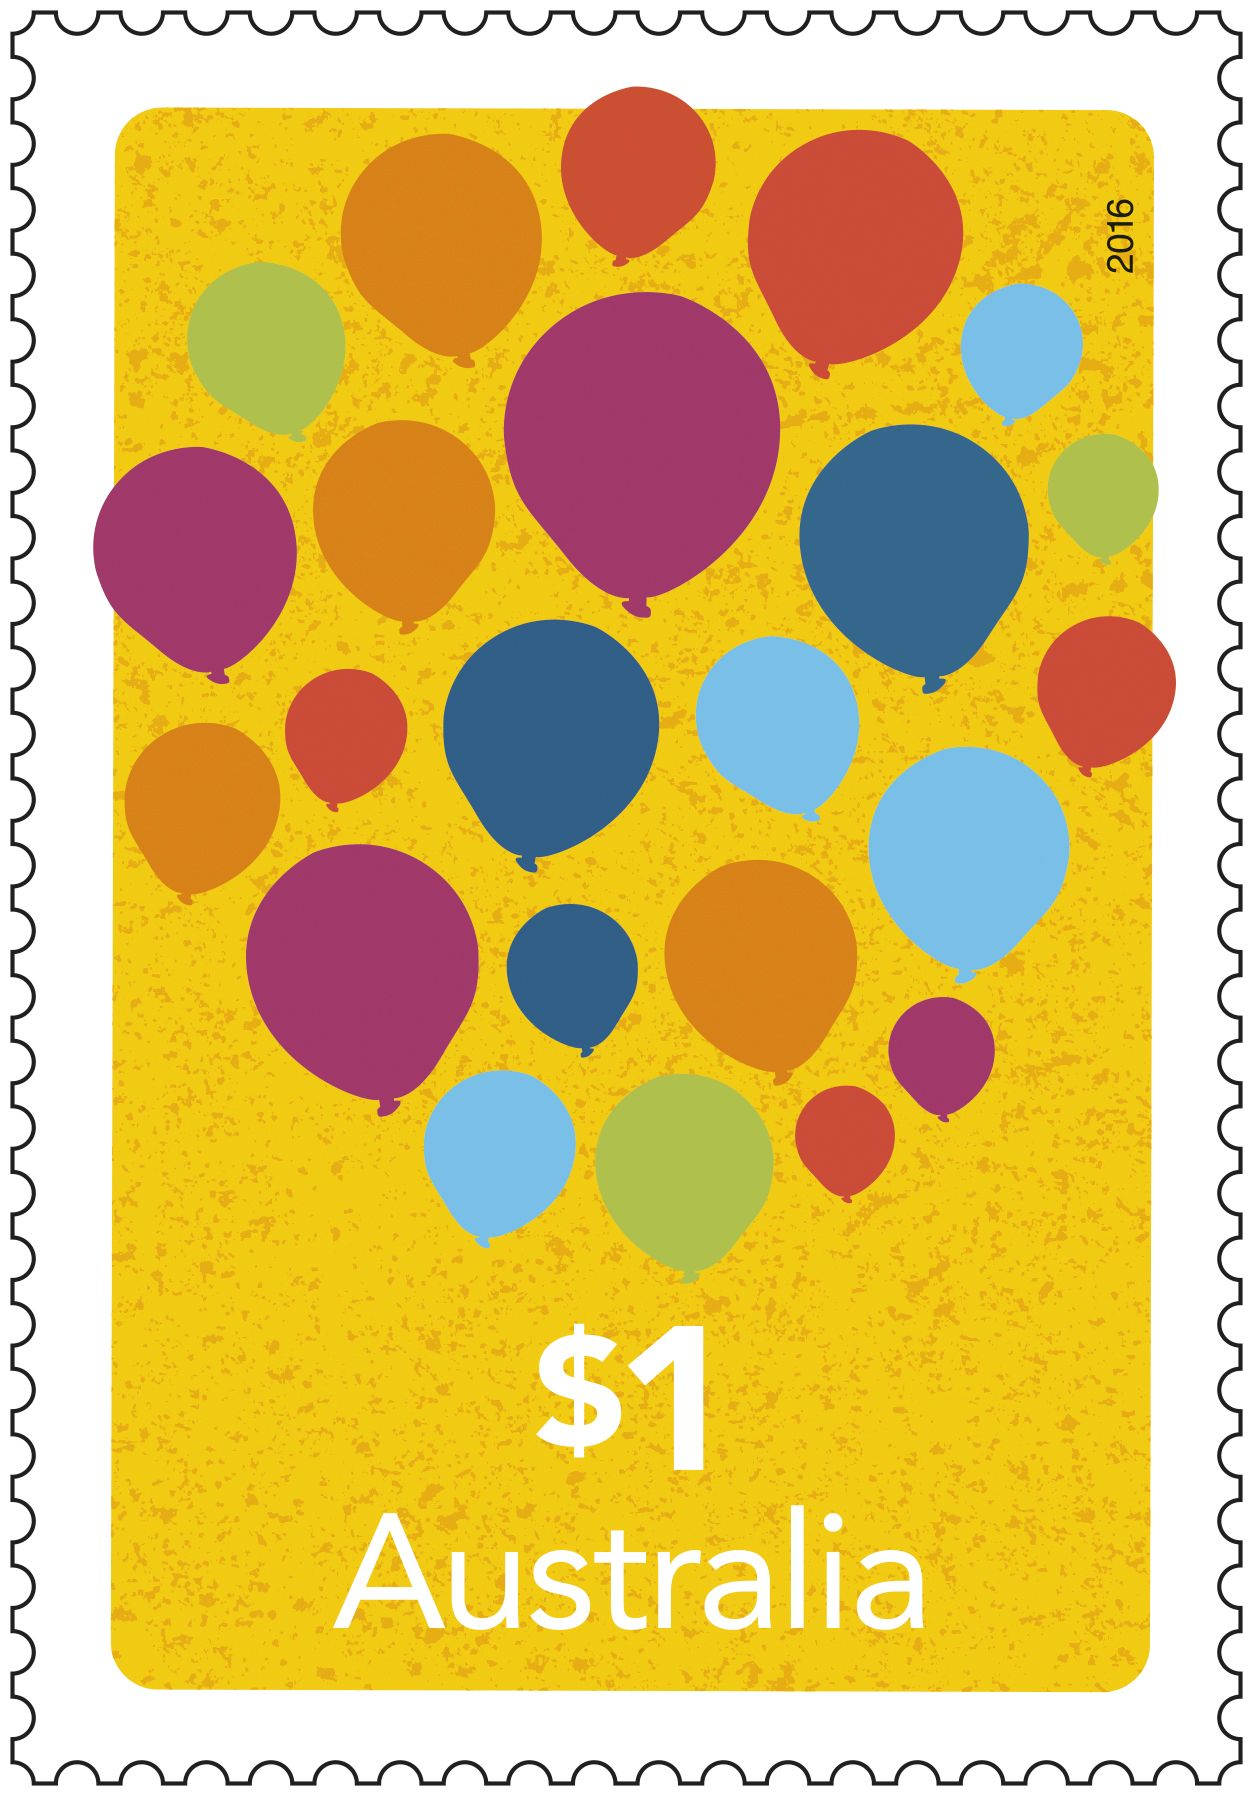 Stamp: Balloons Designer: Sierra Delta Denomination: $1 Stamp size: 26mm x 37.5mm Perforations: 14.6 x 13.86 The $1 balloons stamp is a great way to send that personalised letter for birthdays, greetings or just to brighten up someone's day. #StampCollecting, #AustralianStamps, #Philatelic, #Philately, #AusPostCollectables, #StampCollection, #Celebrate, #Birthday, #Greetings, #Balloons, #PersonalisedStamps,  Issue title: Love to Celebrate Issue date: 25/01/2016